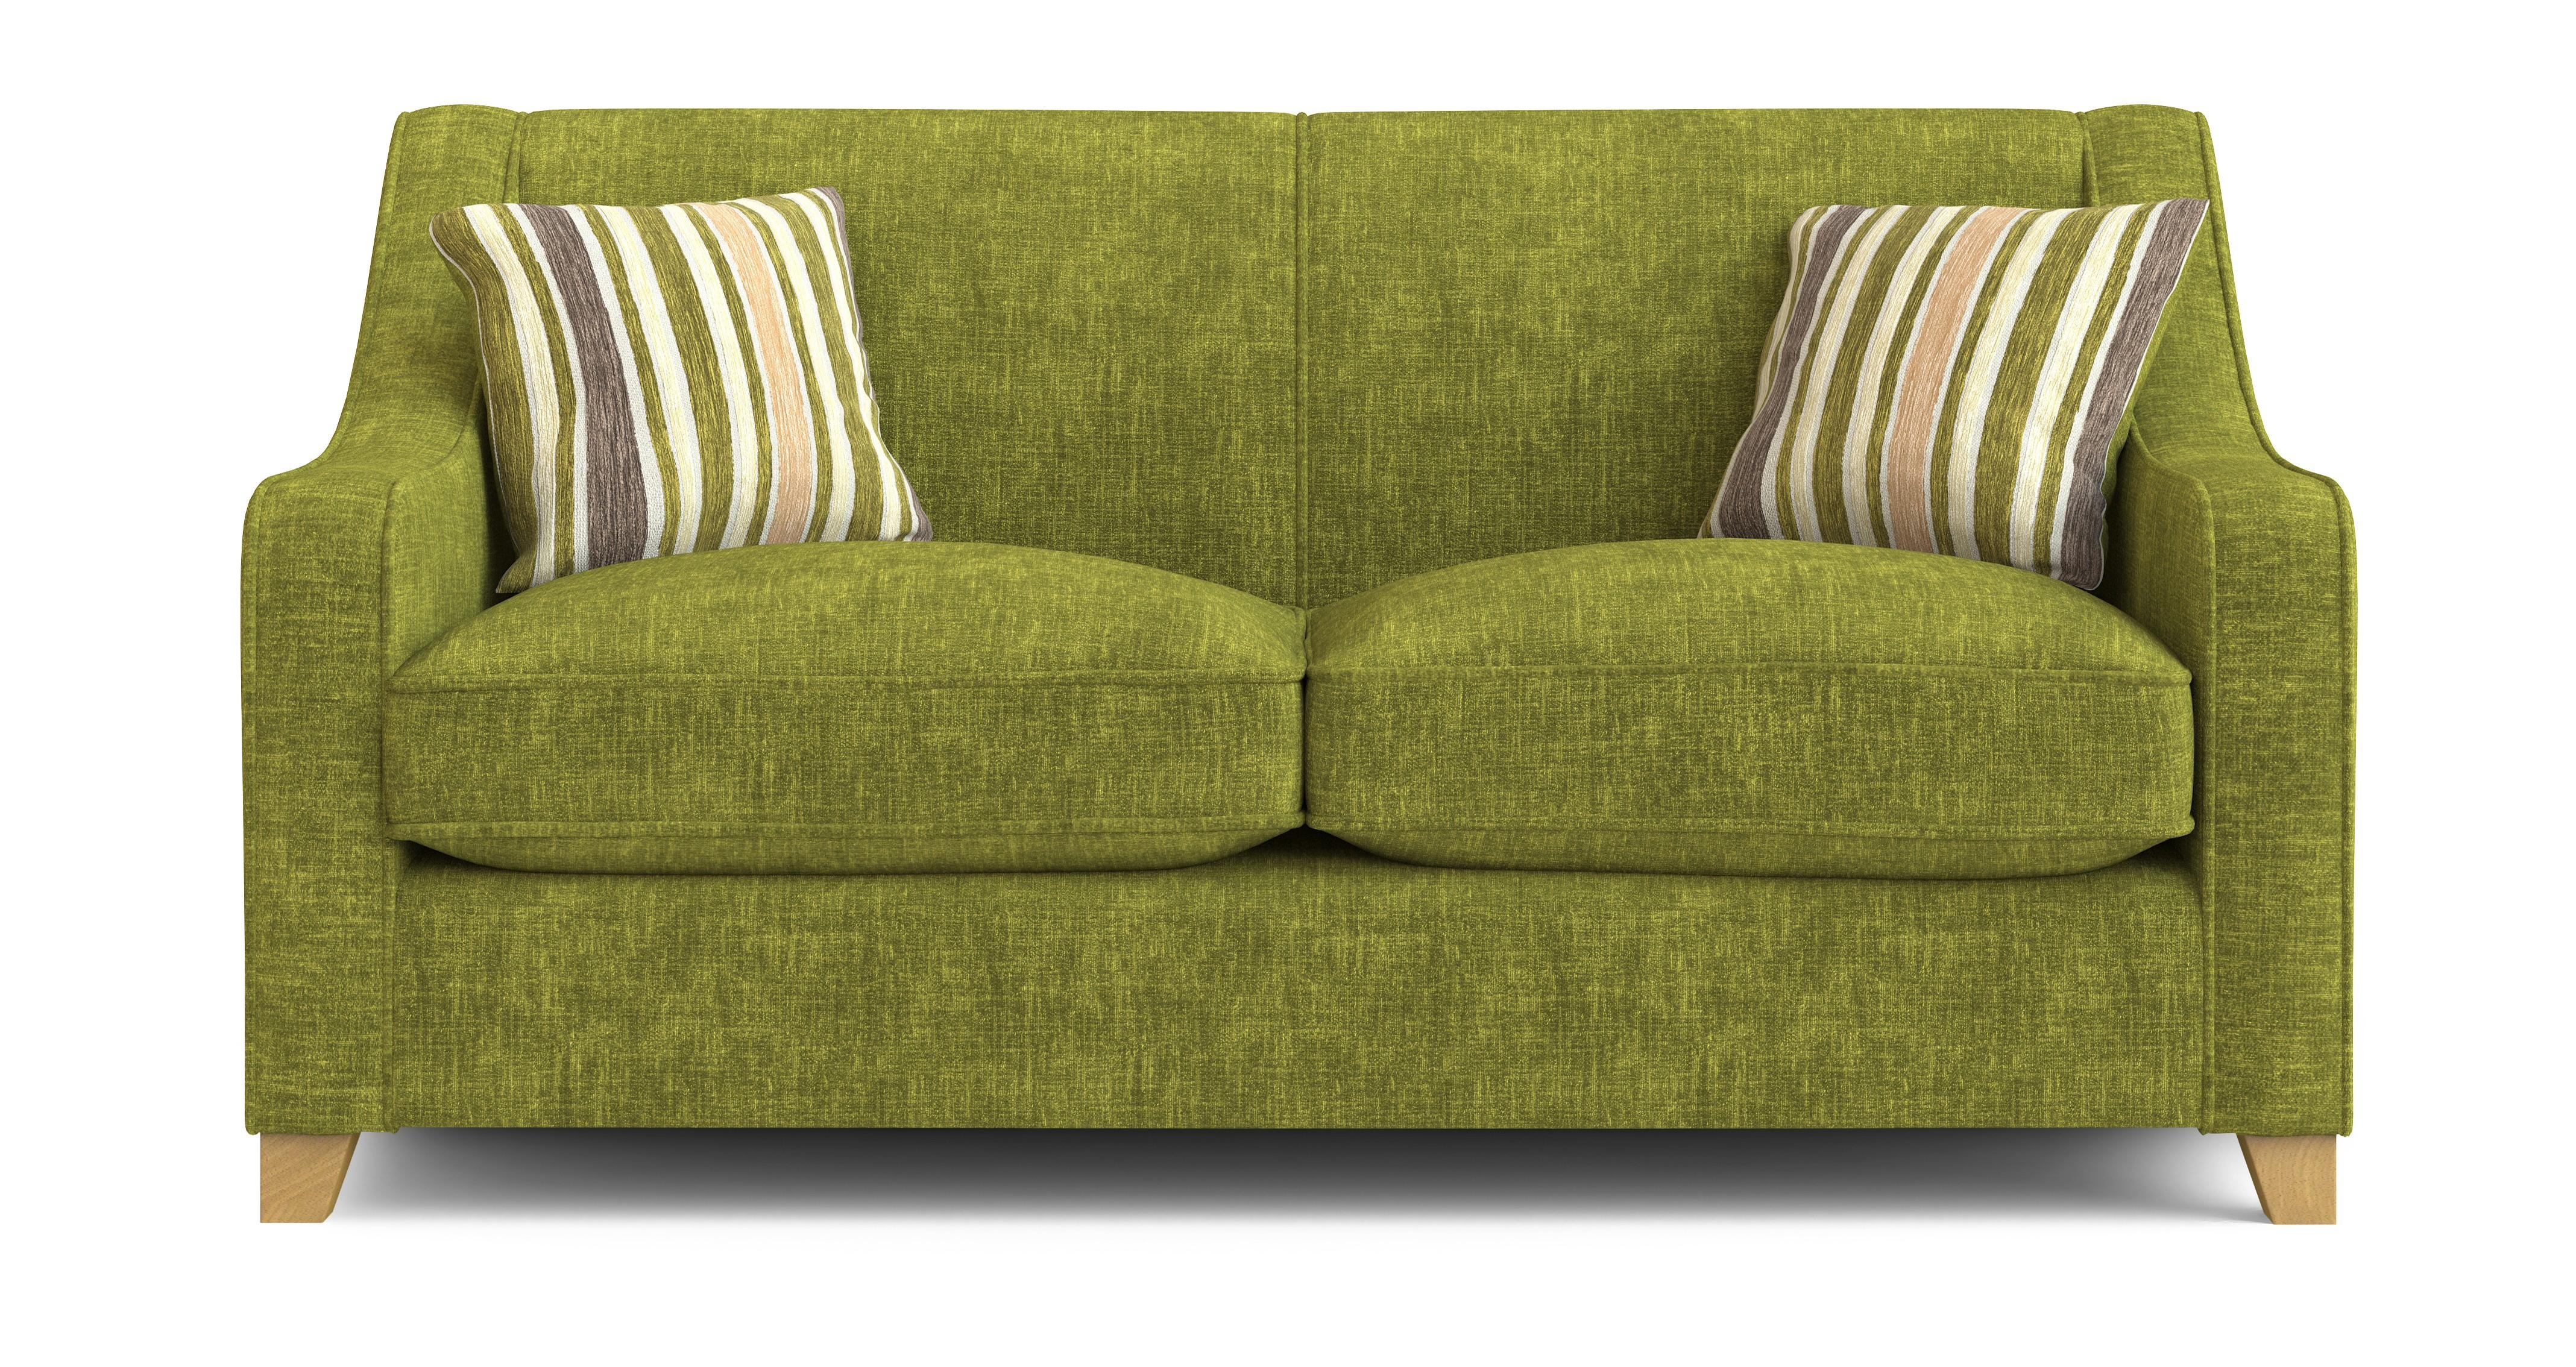 Small 2 Seater Sofa Best Sofas Ideas Sofascouch Within Small 2 Seater Sofas (Image 8 of 15)